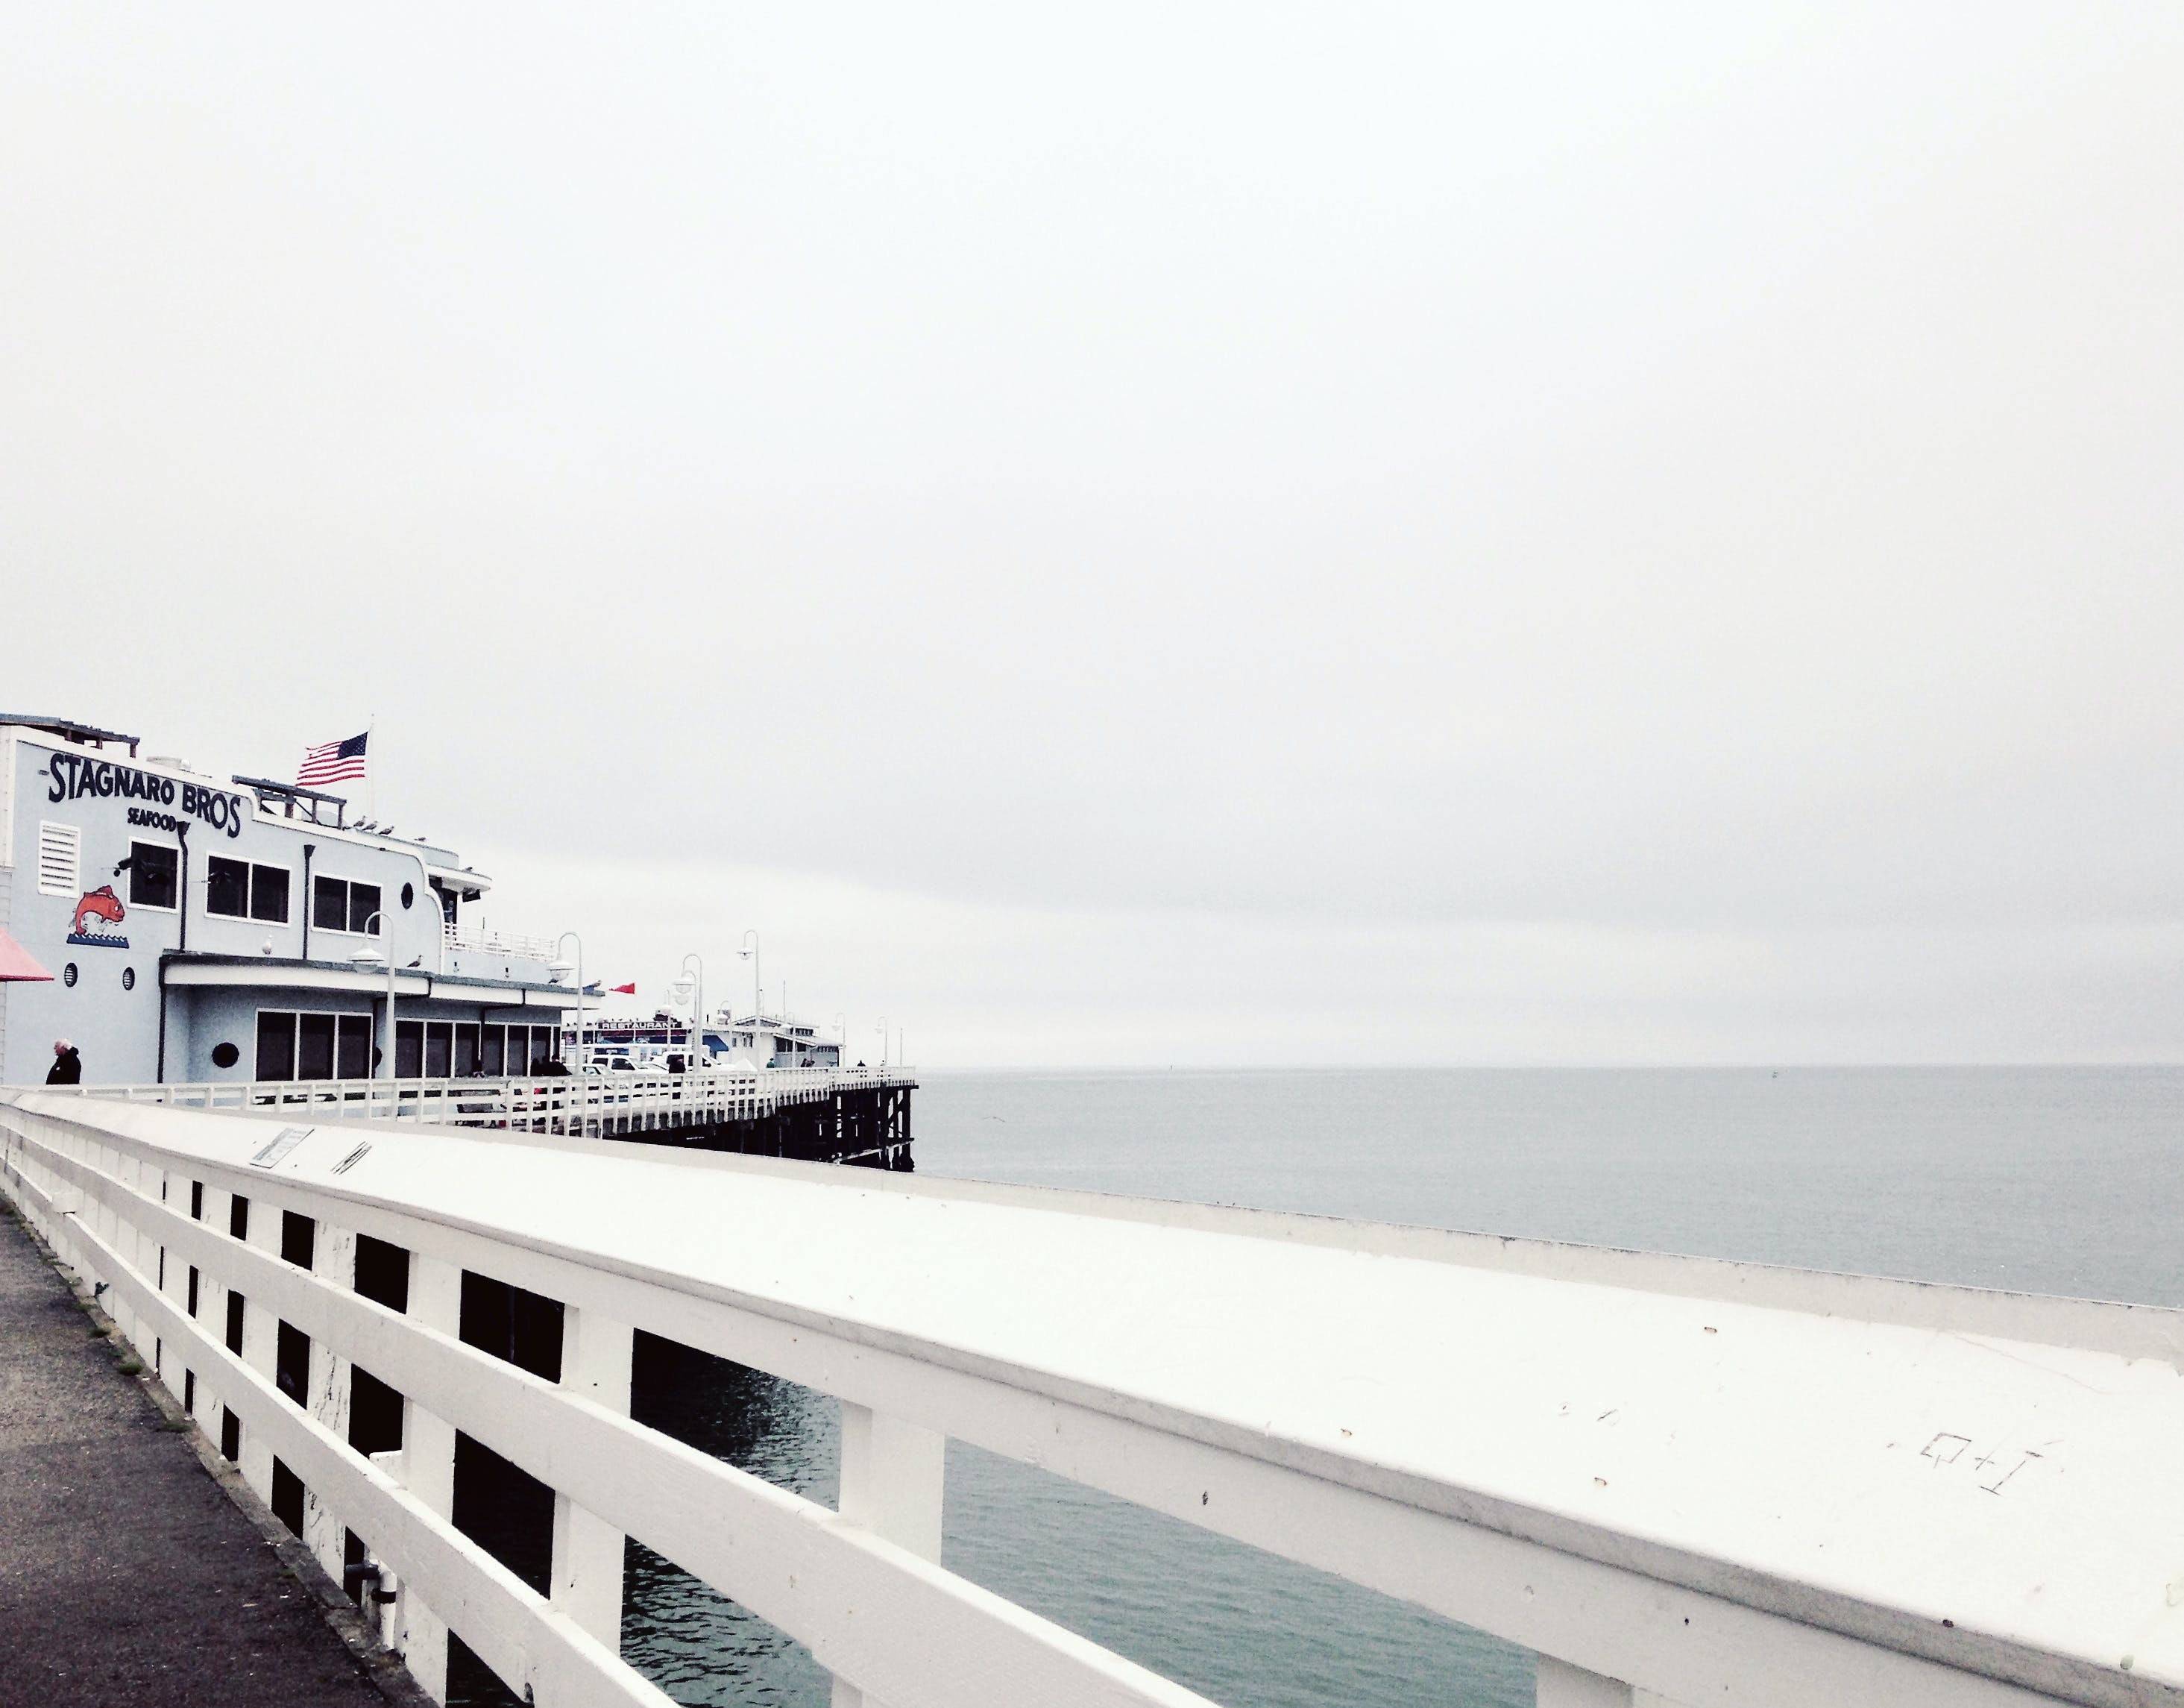 White Cruise Ship Near Concrete Dock on Body of Water Under White Cloudy Sky during Daytime